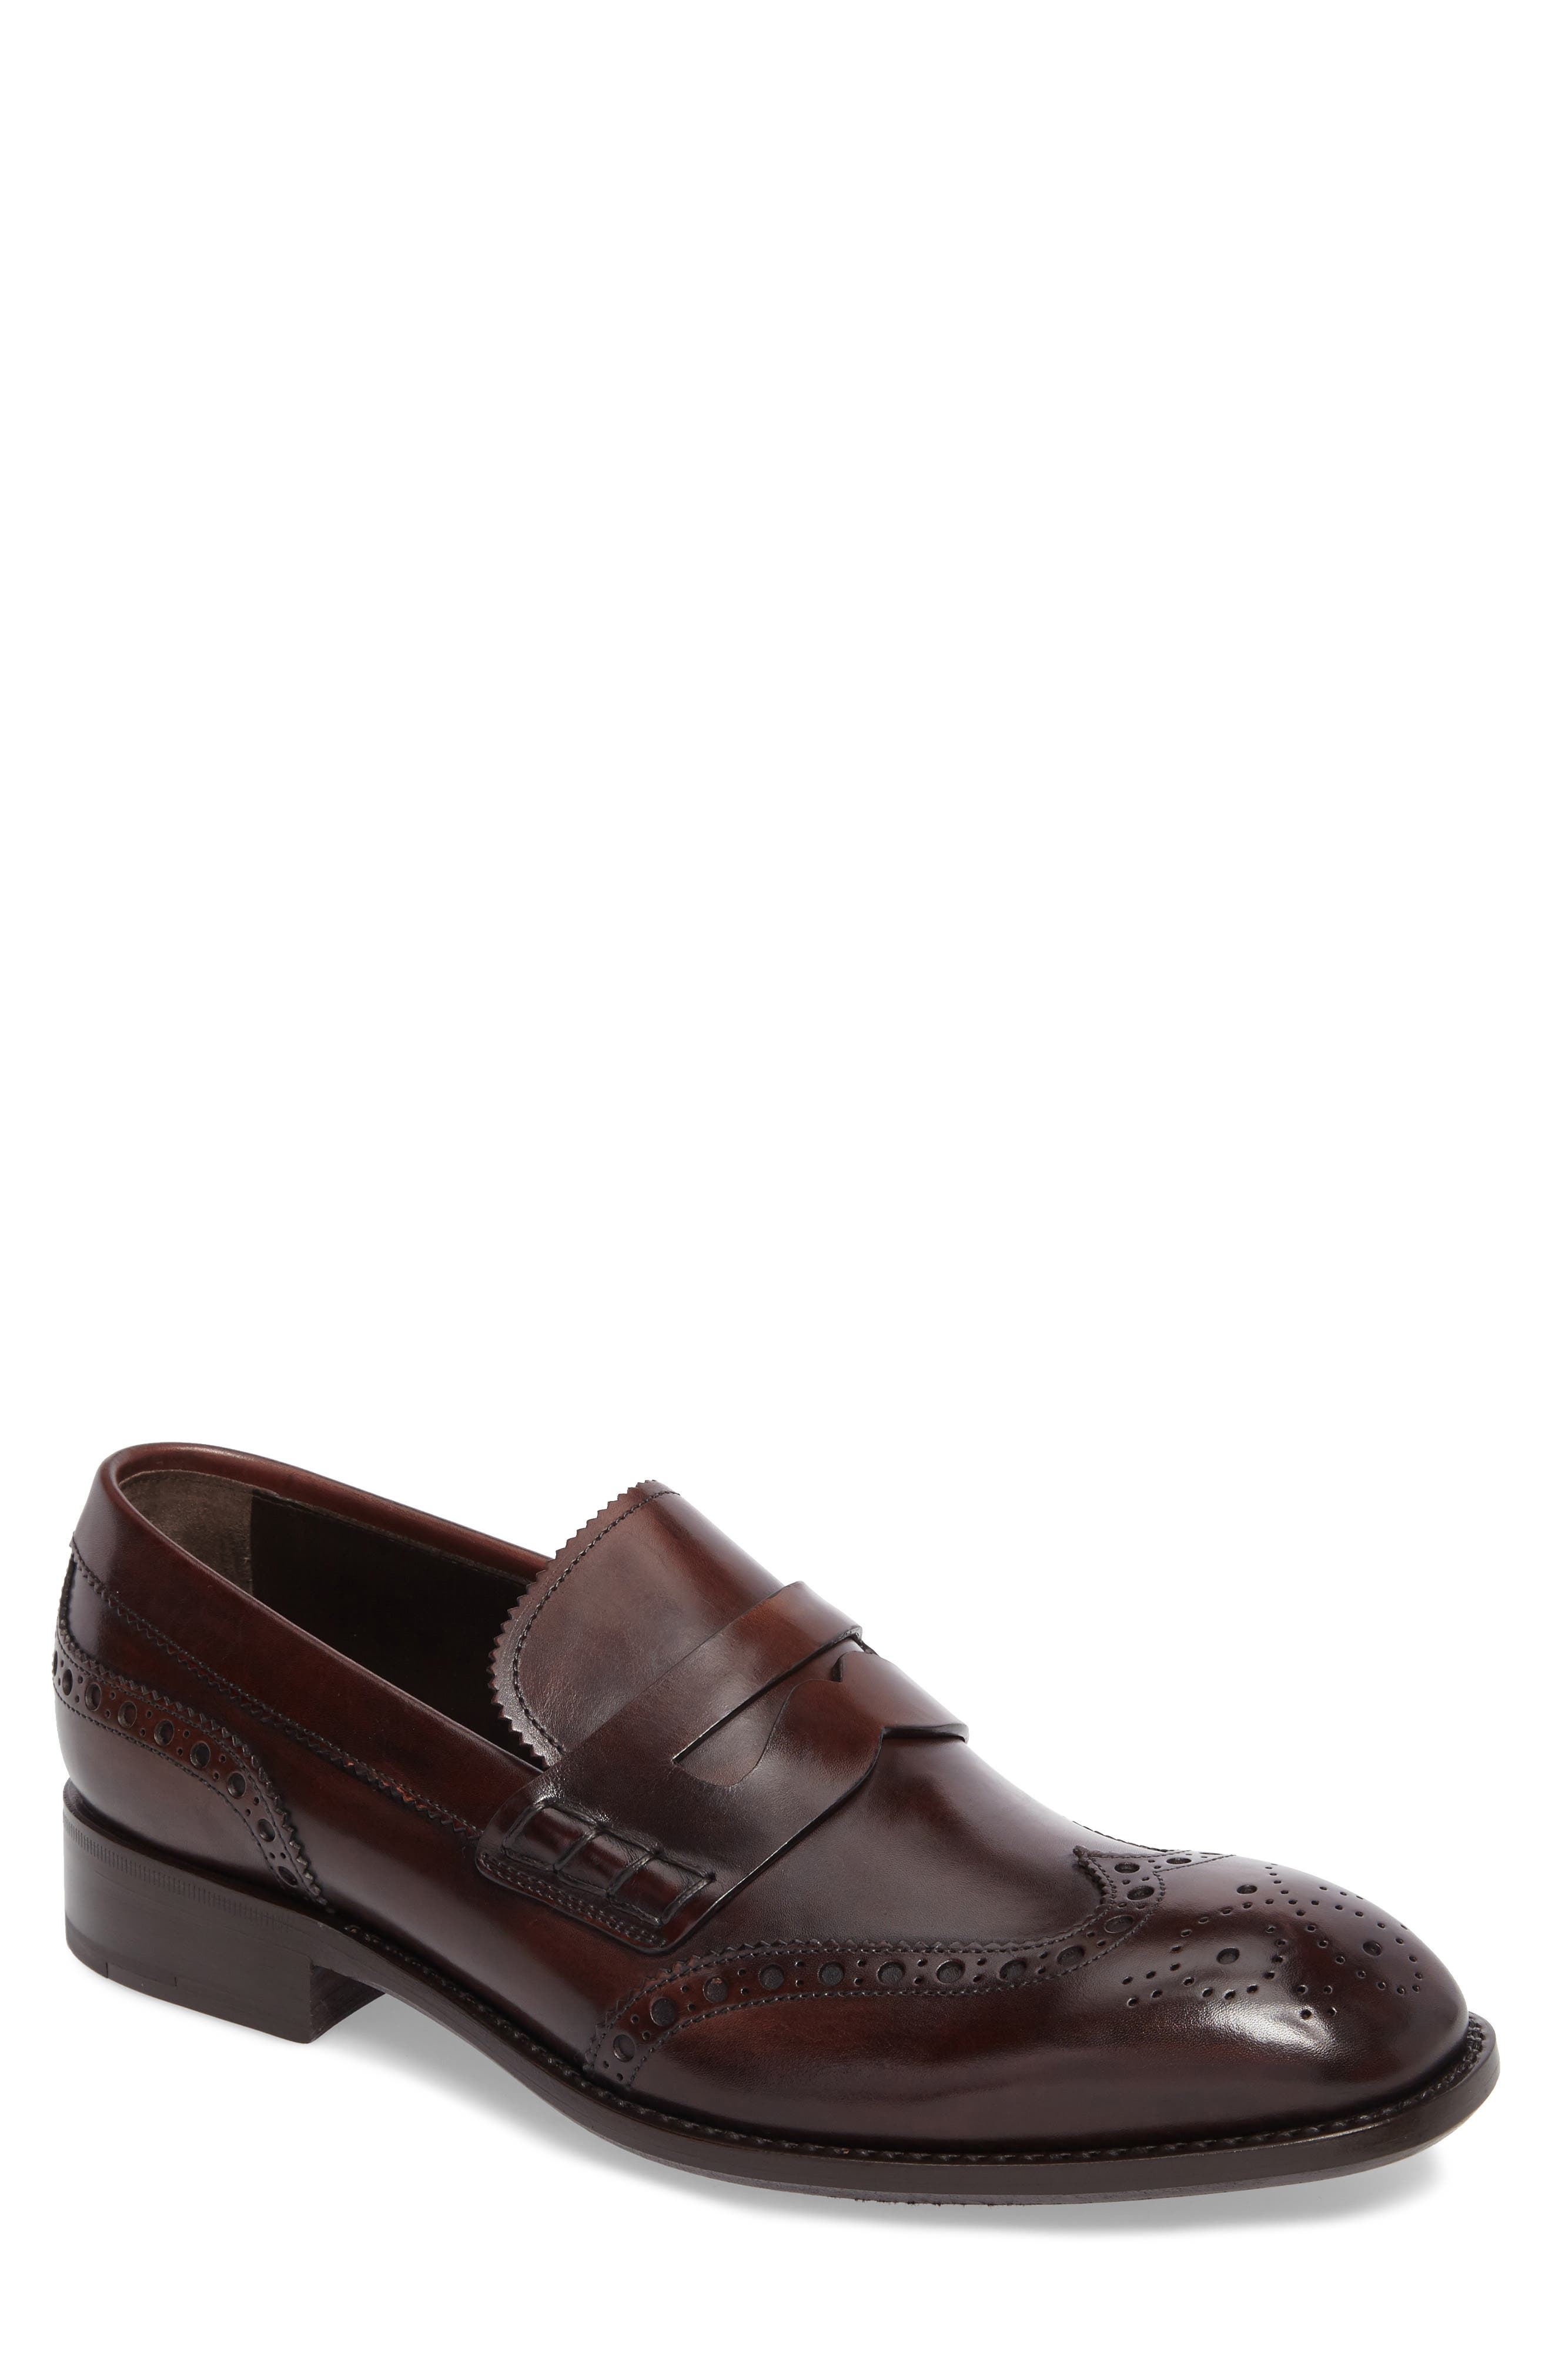 Penny Loafer,                         Main,                         color, 201